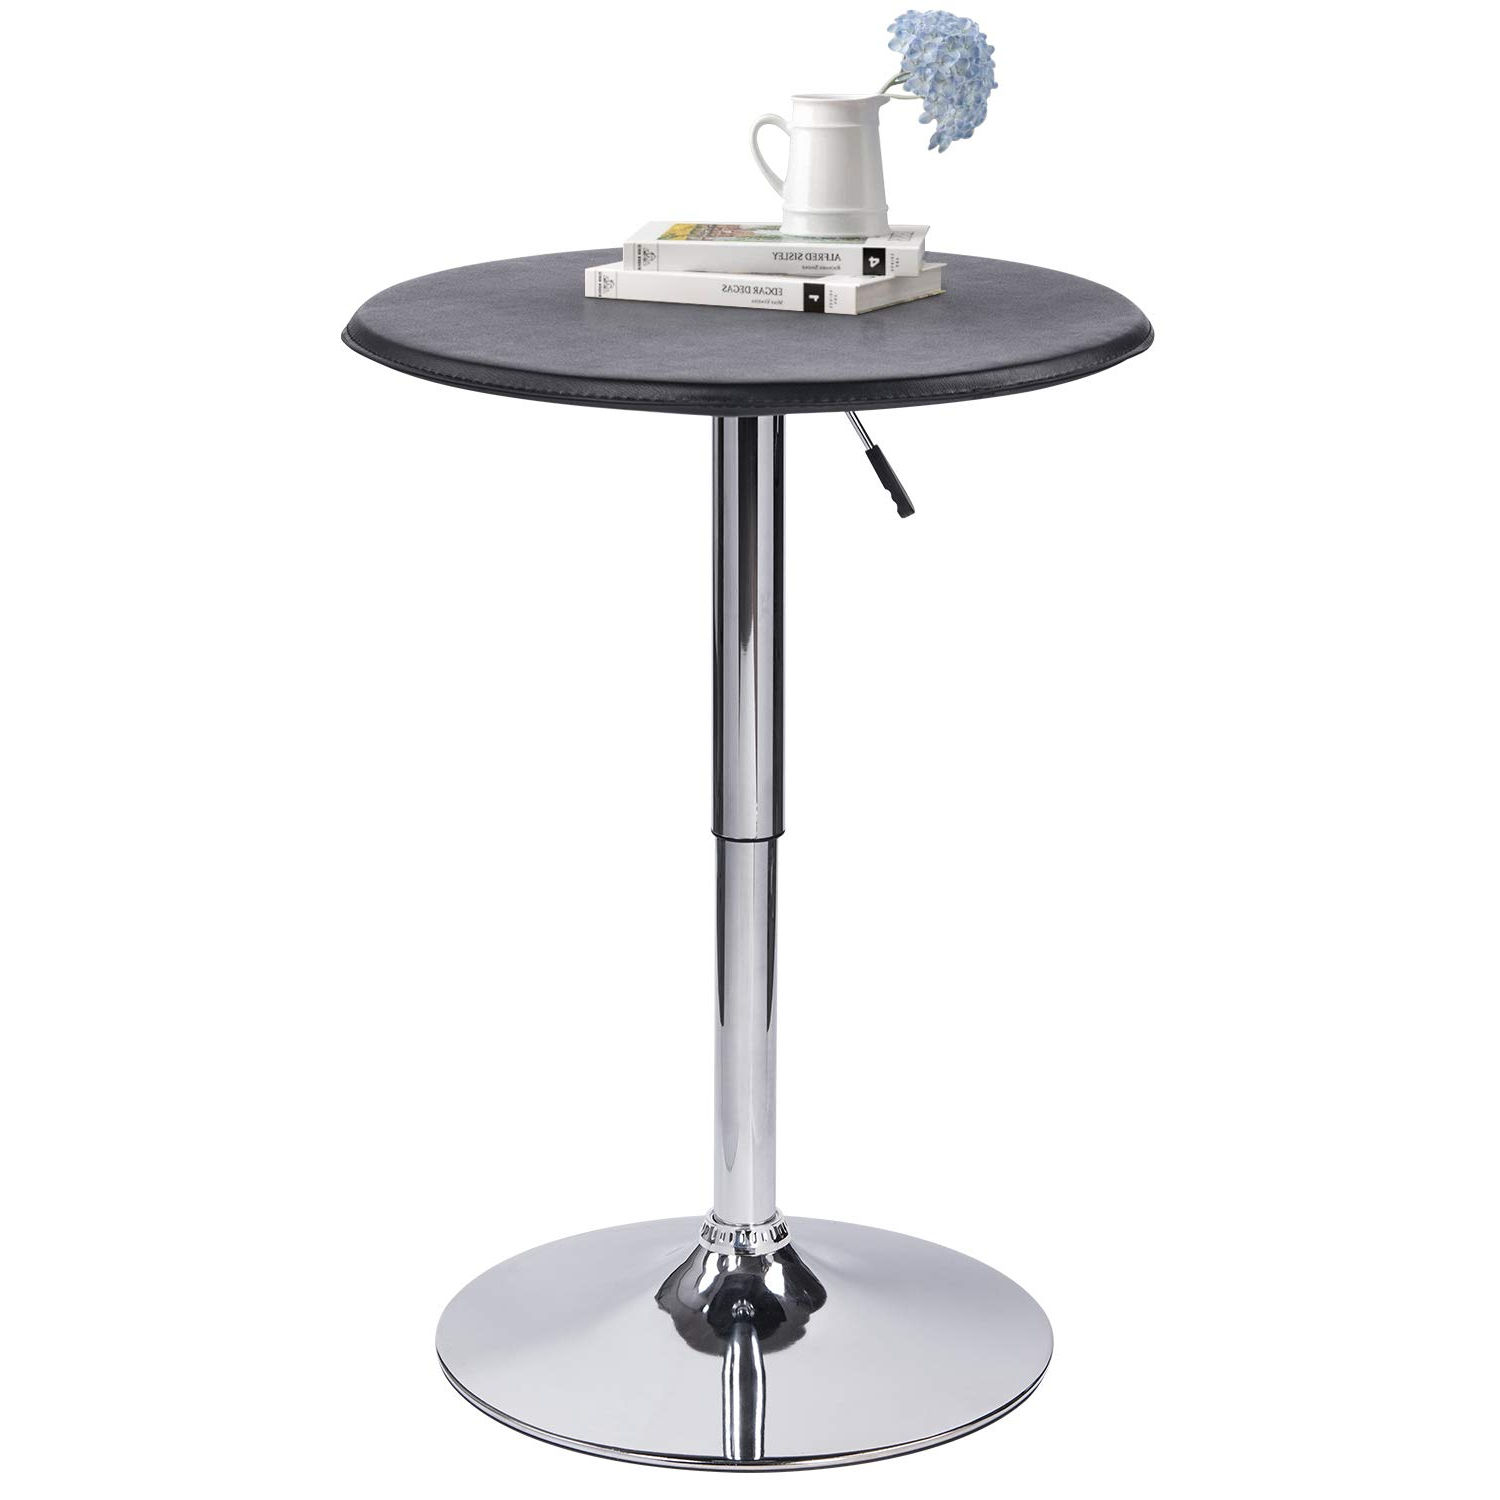 """Well Liked Modern Pub Table Adjustable Height 360 Swivel Round Kitchen Bar Table –  Faux Leather Top Cover, Metal Leg And Base – 24.4"""" Top And  (View 3 of 25)"""